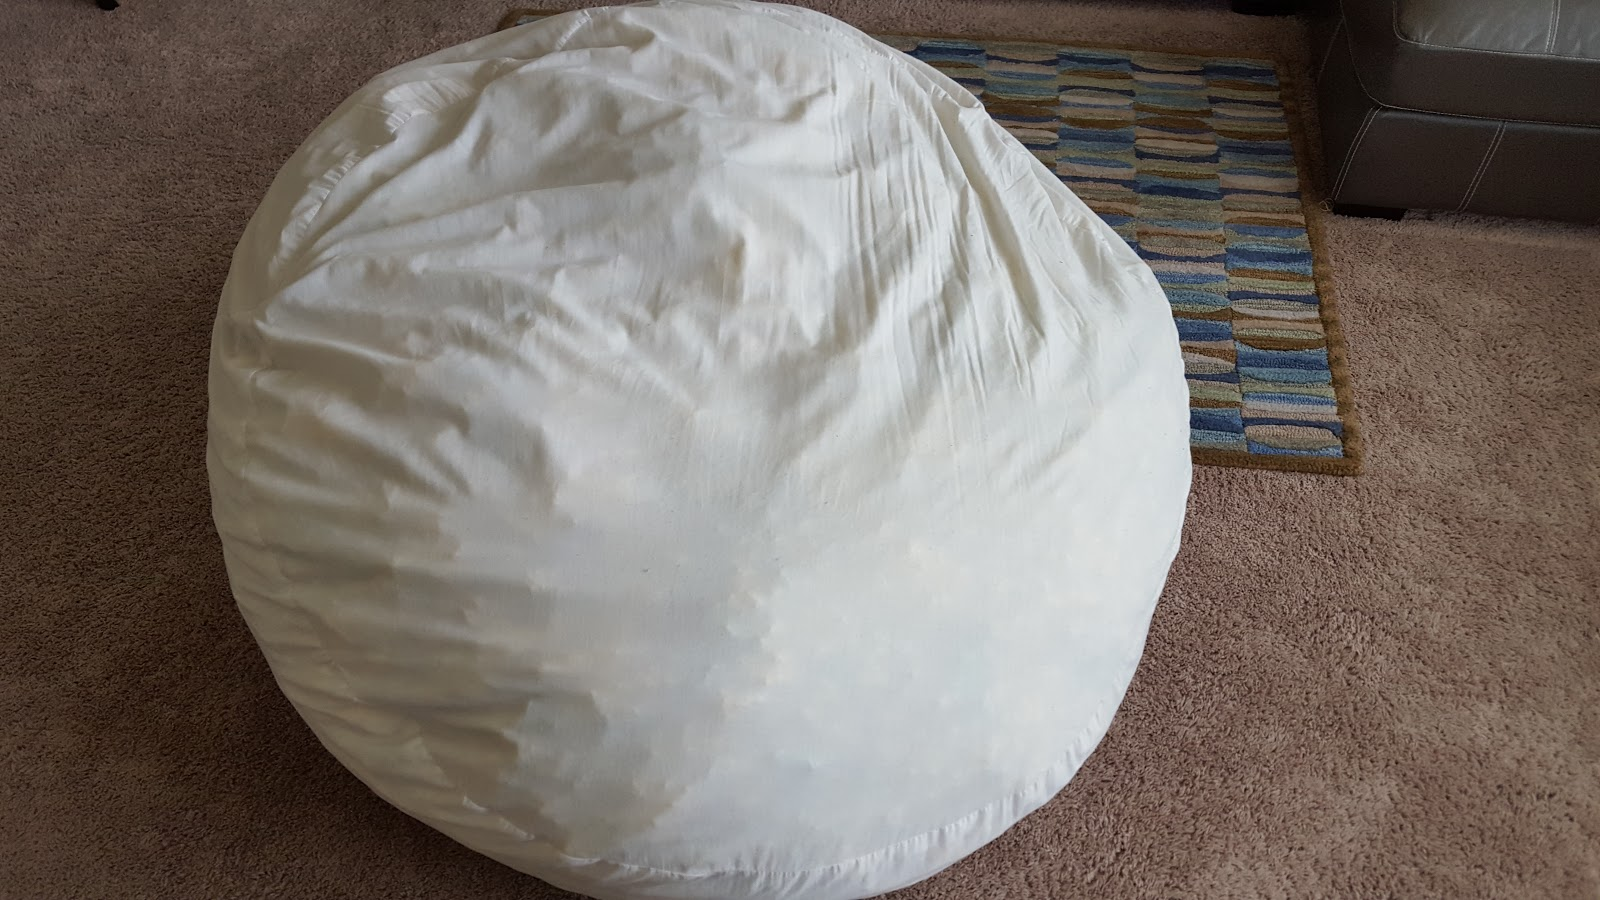 Giant Bean Bag Chair Tutorial So Much To Make